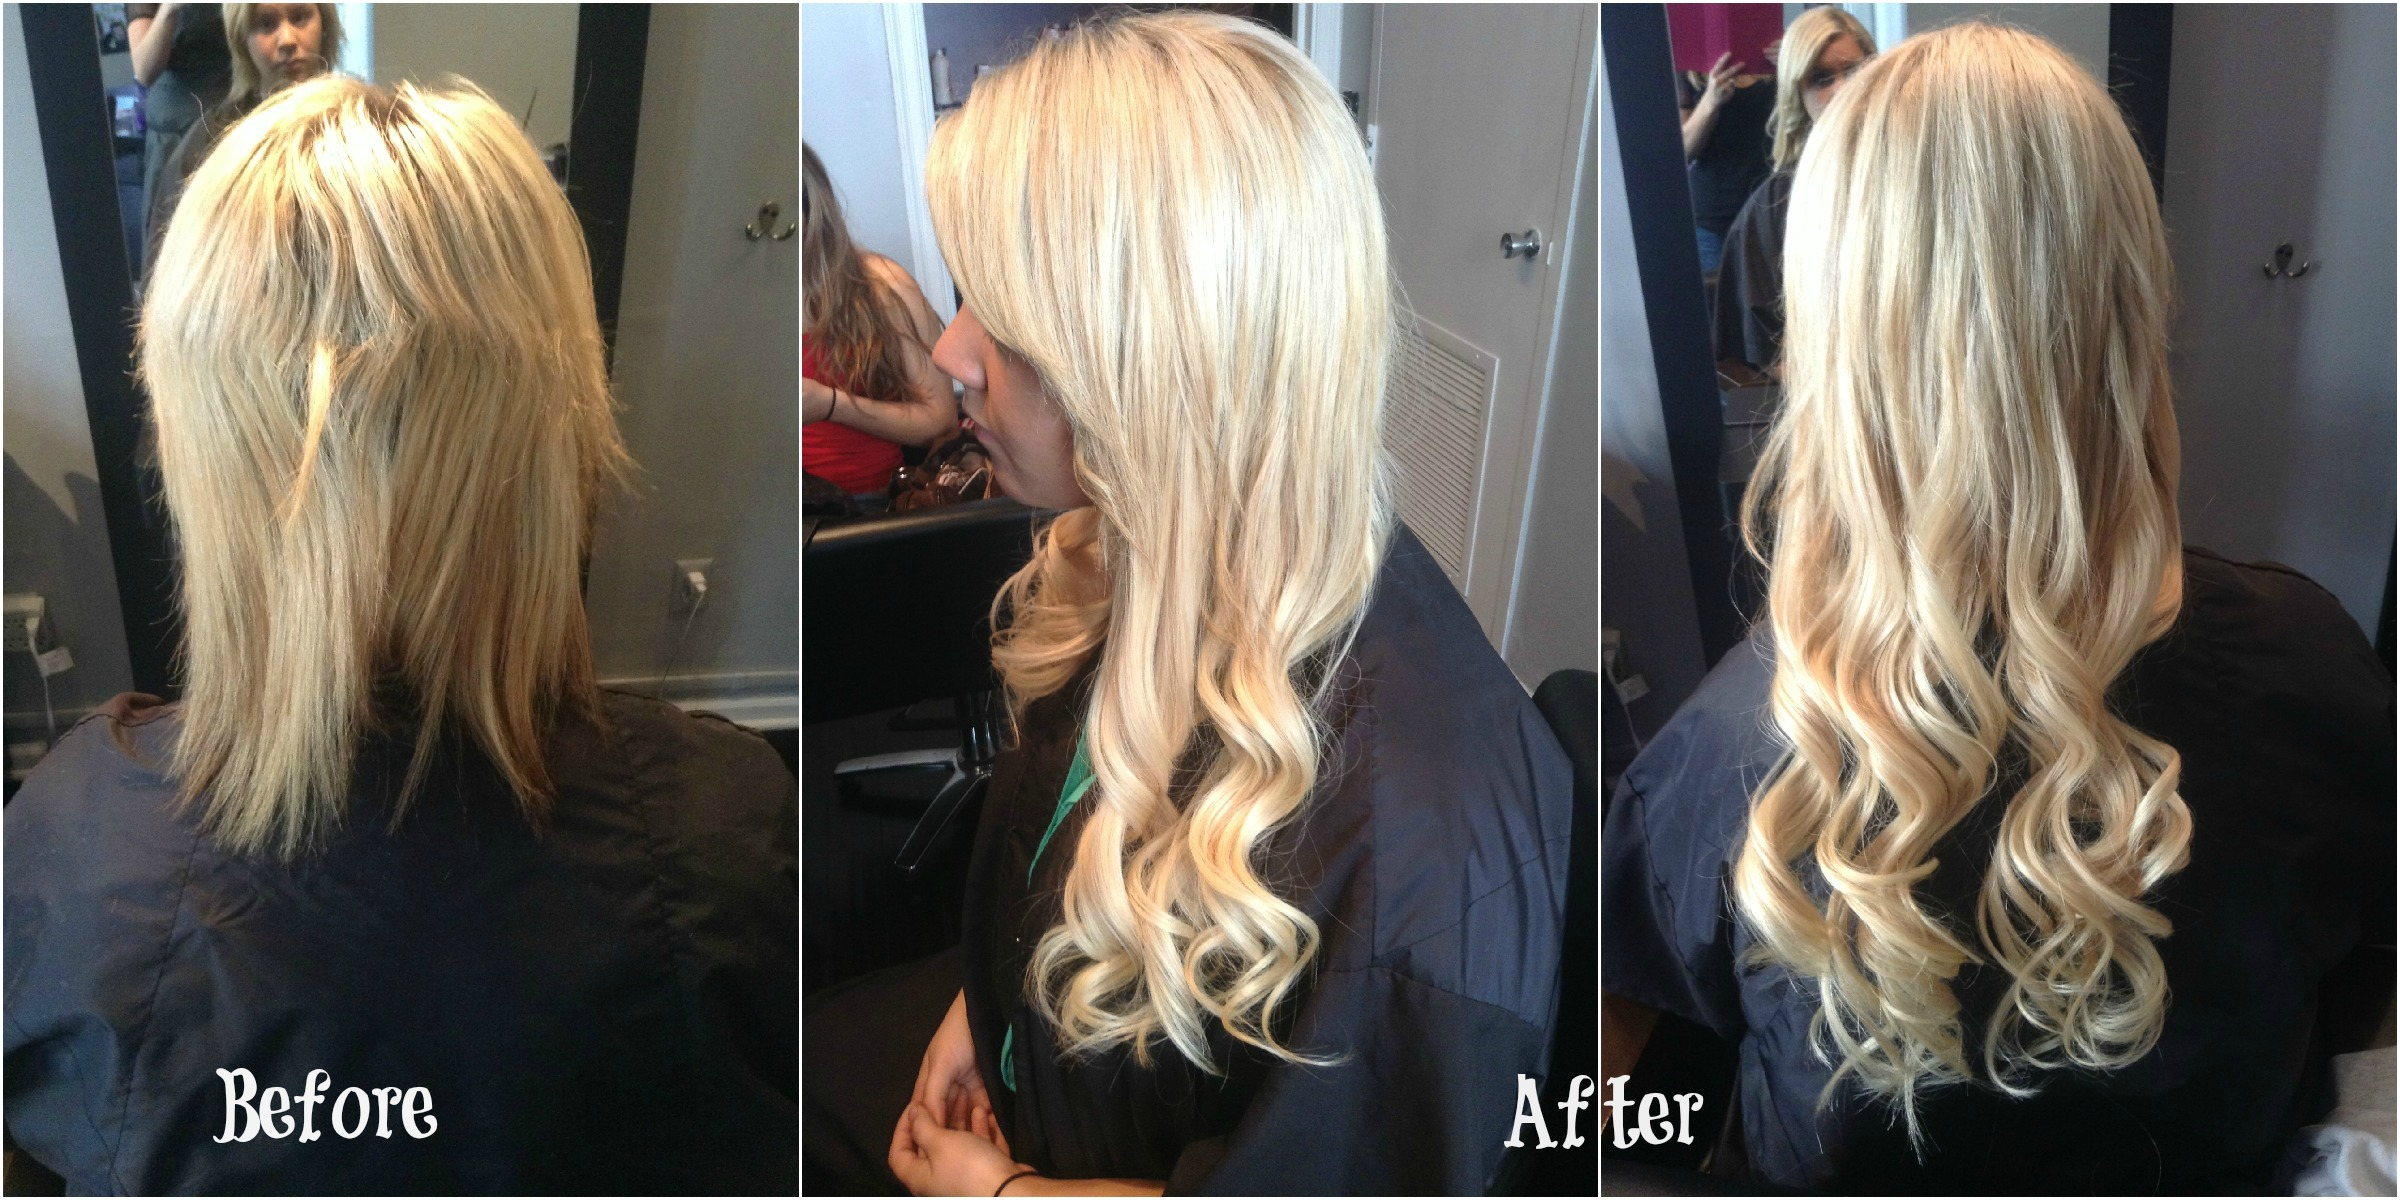 West Palm Beach Hair Extensions Specialist Hair By Zaklina